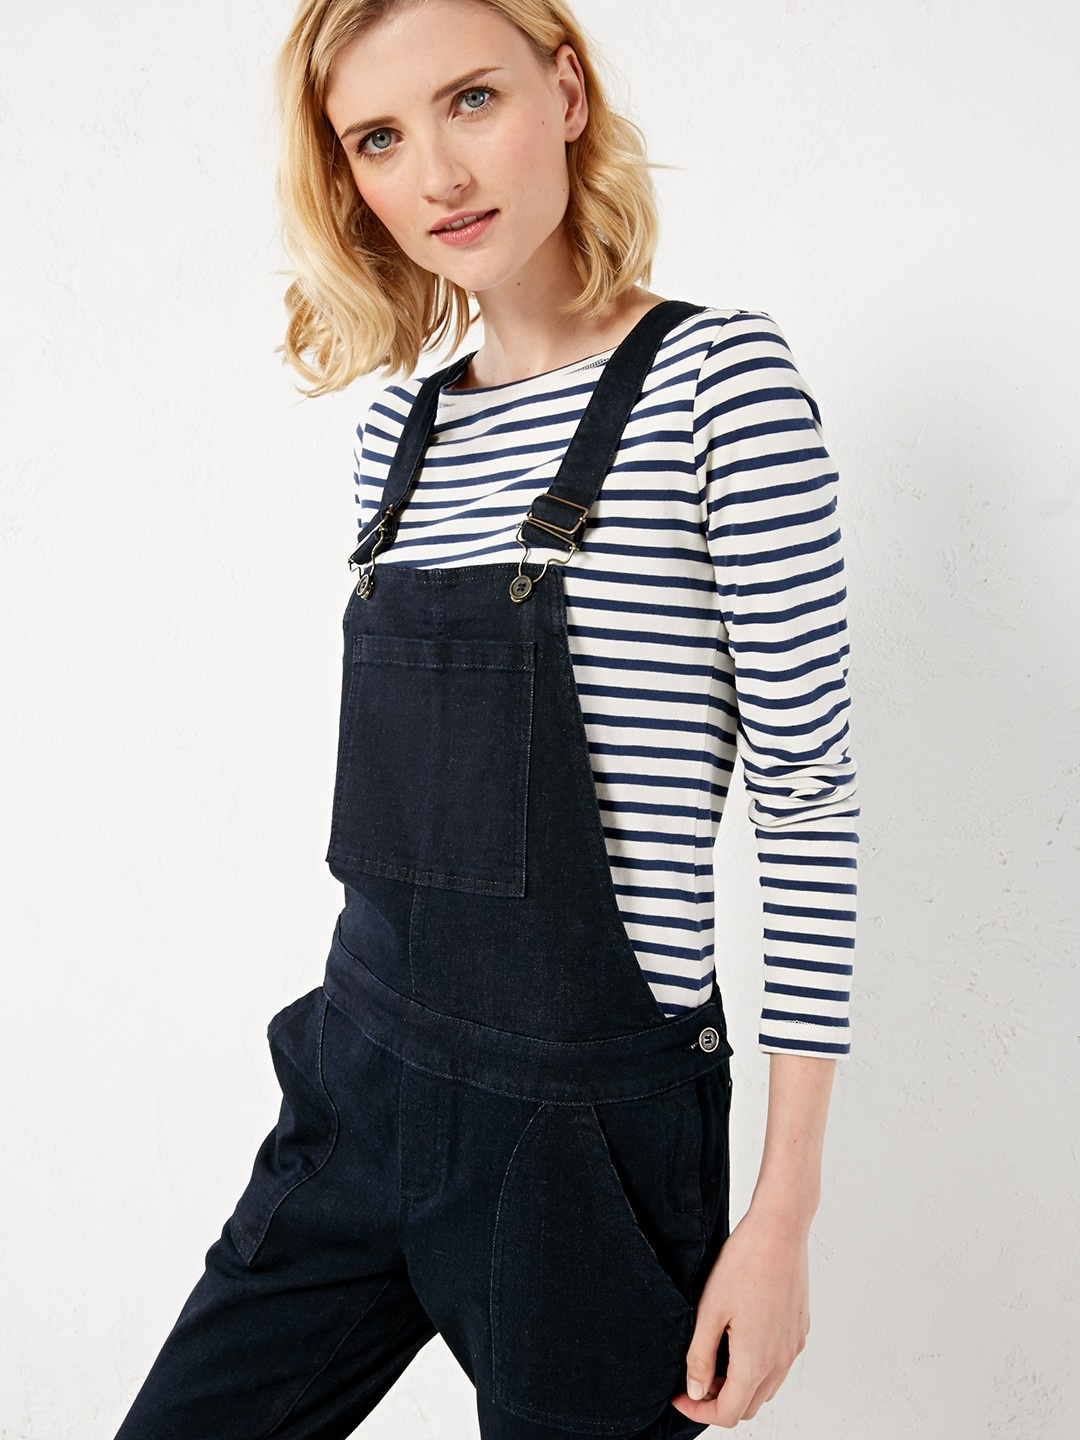 lts white stuff madison dungarees